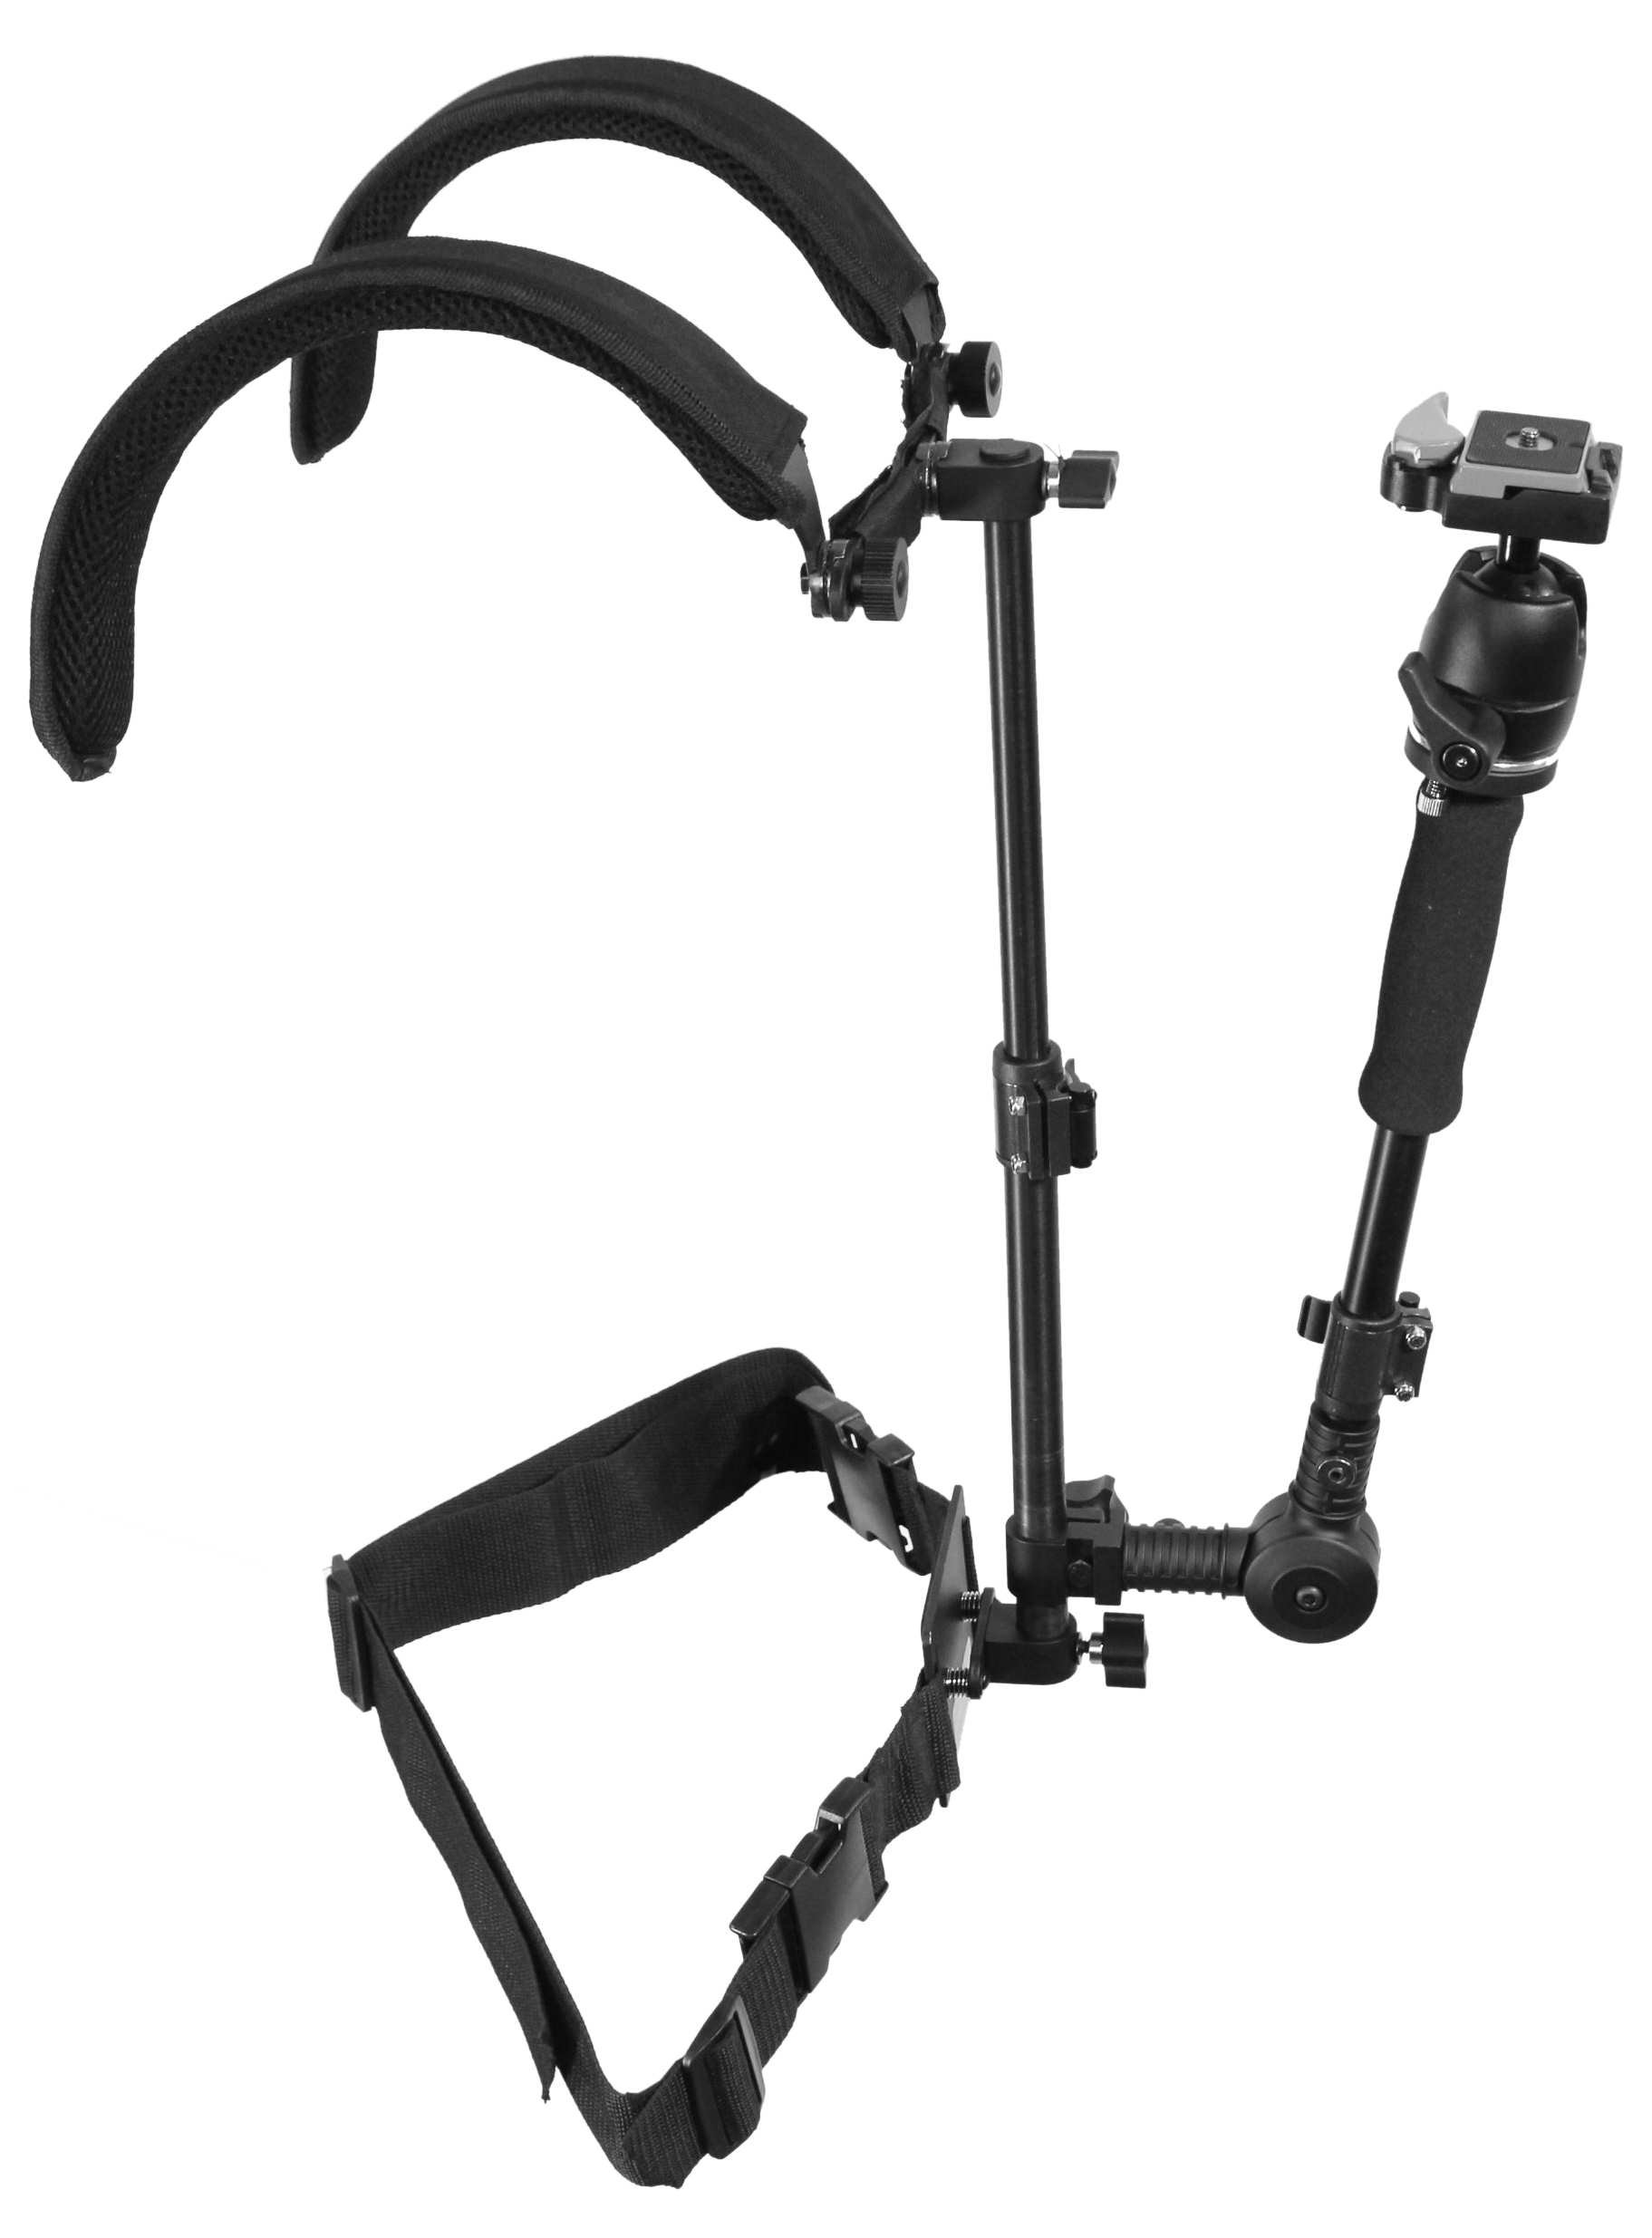 ALZO BOD-A-Boom Hands Free Camera Support Harness by ALZO digital